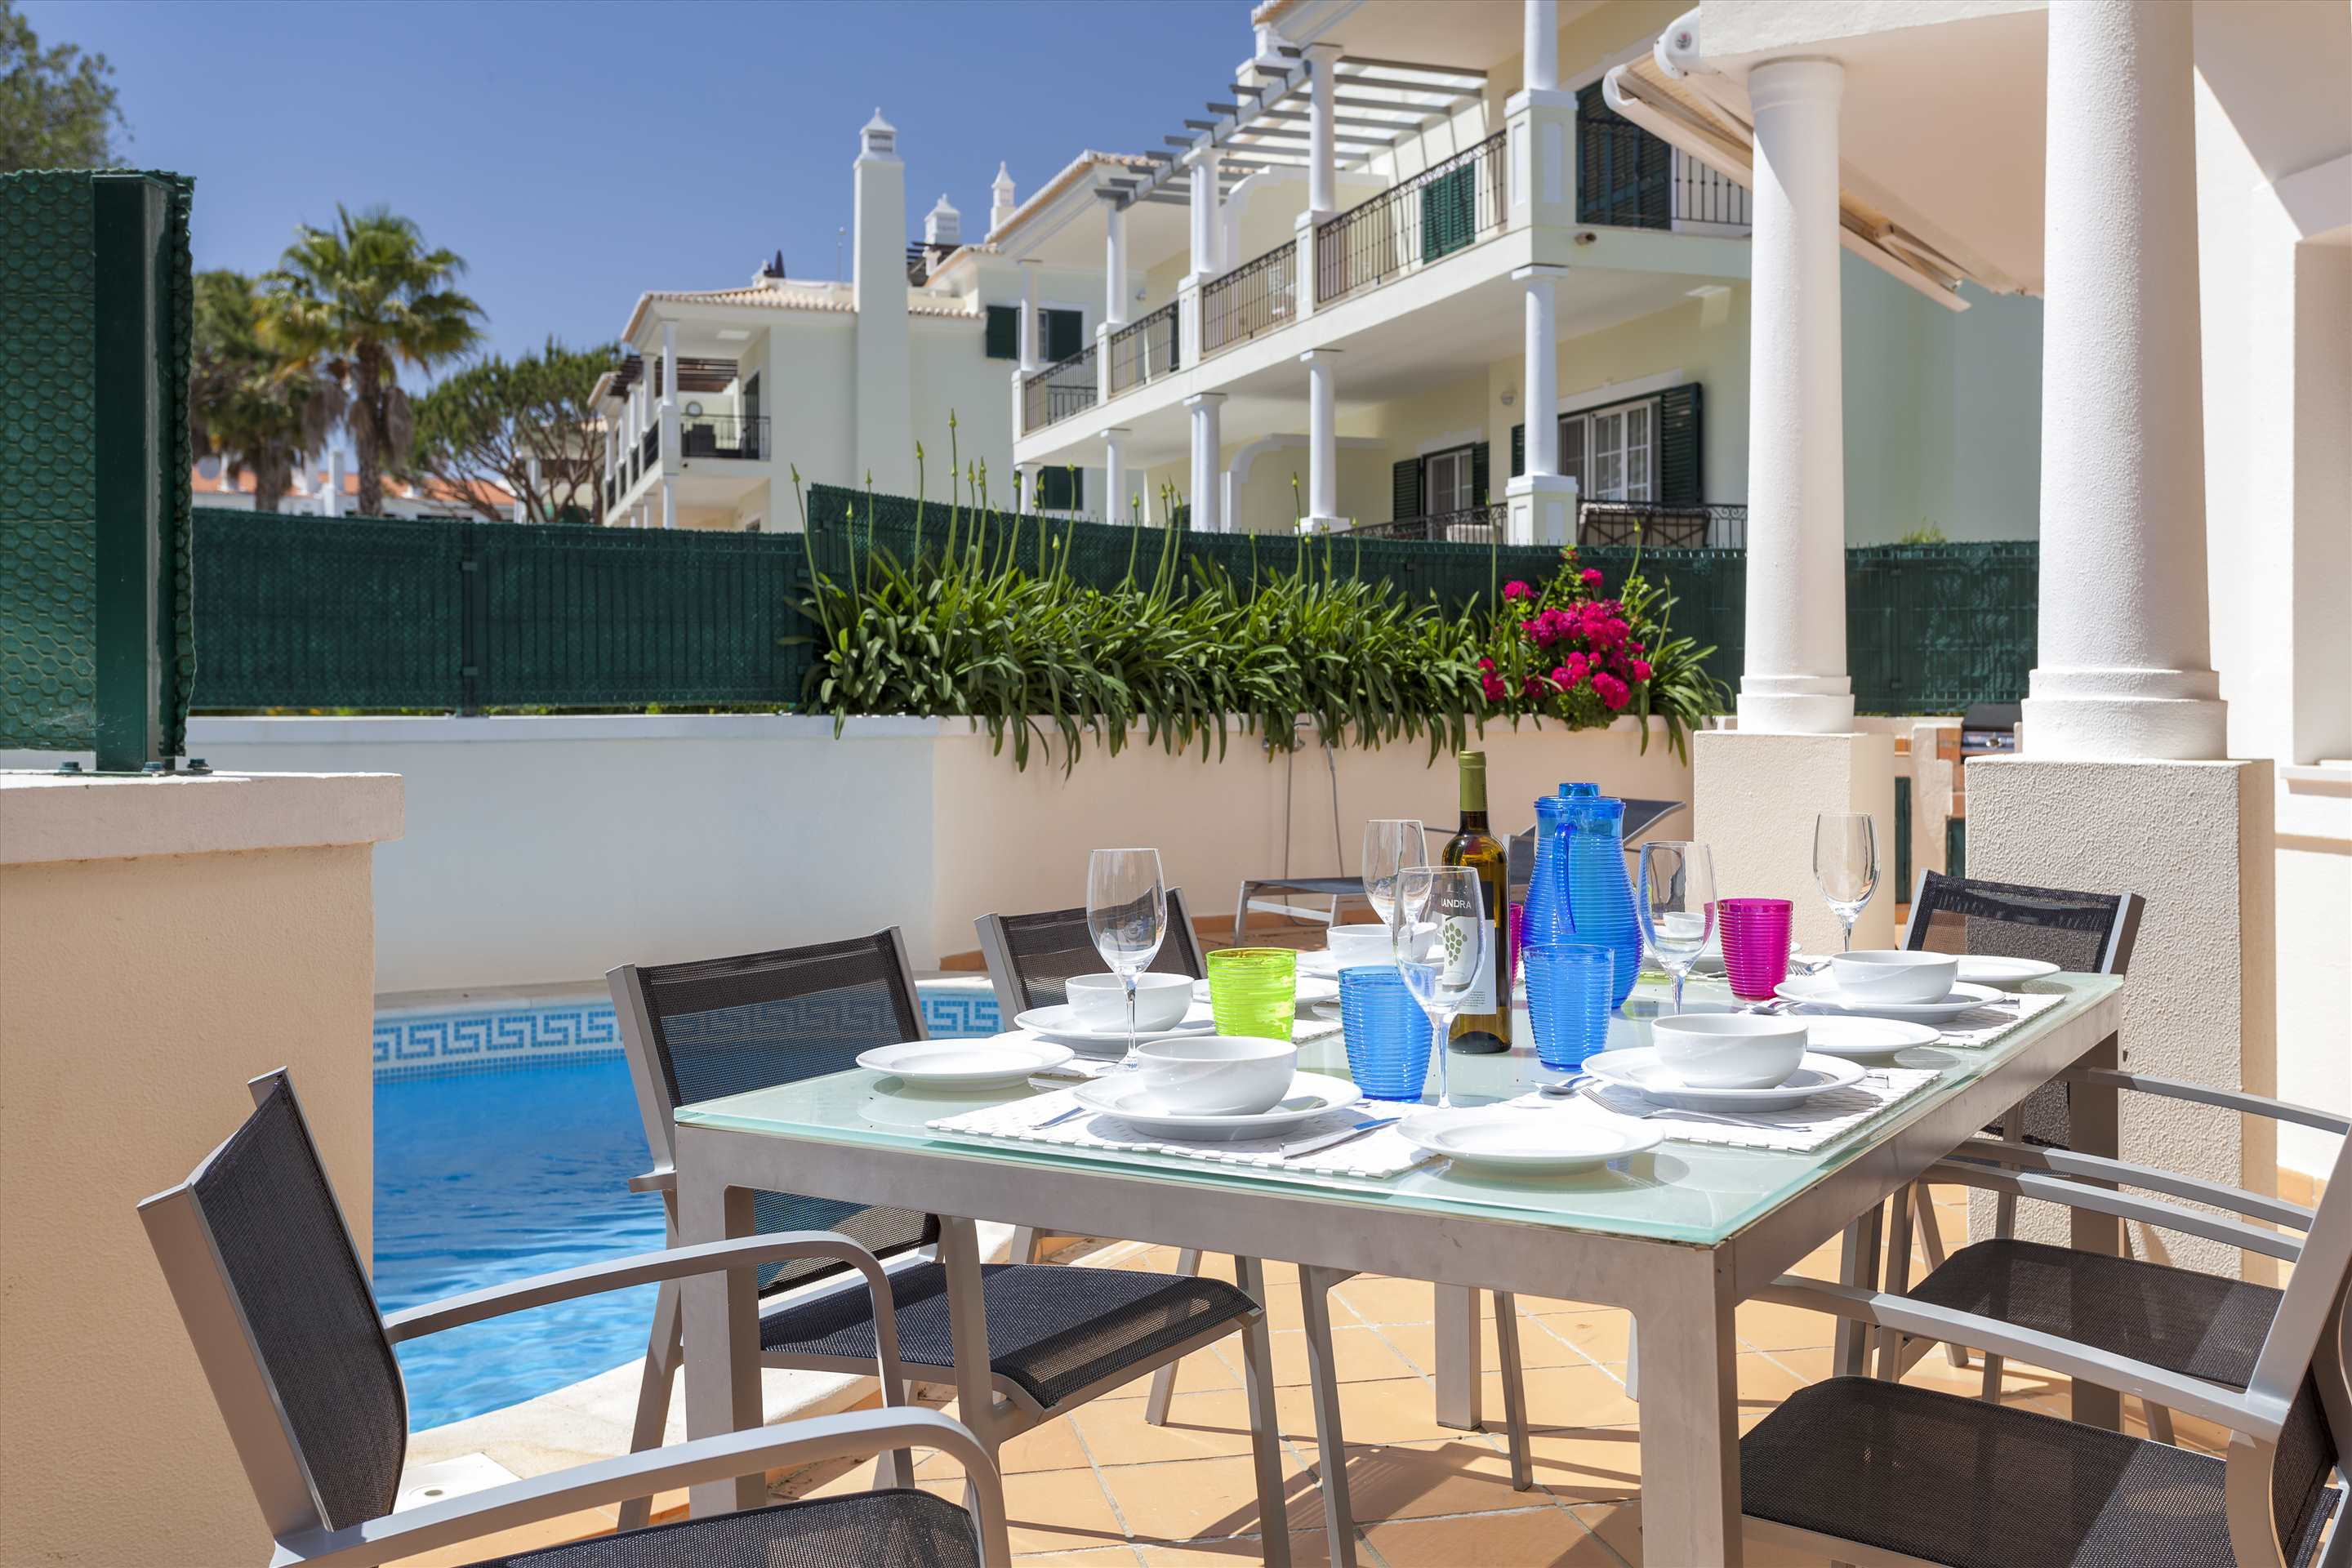 Villa Catarina, 3 bedroom apartment in Vale do Lobo, Algarve Photo #2